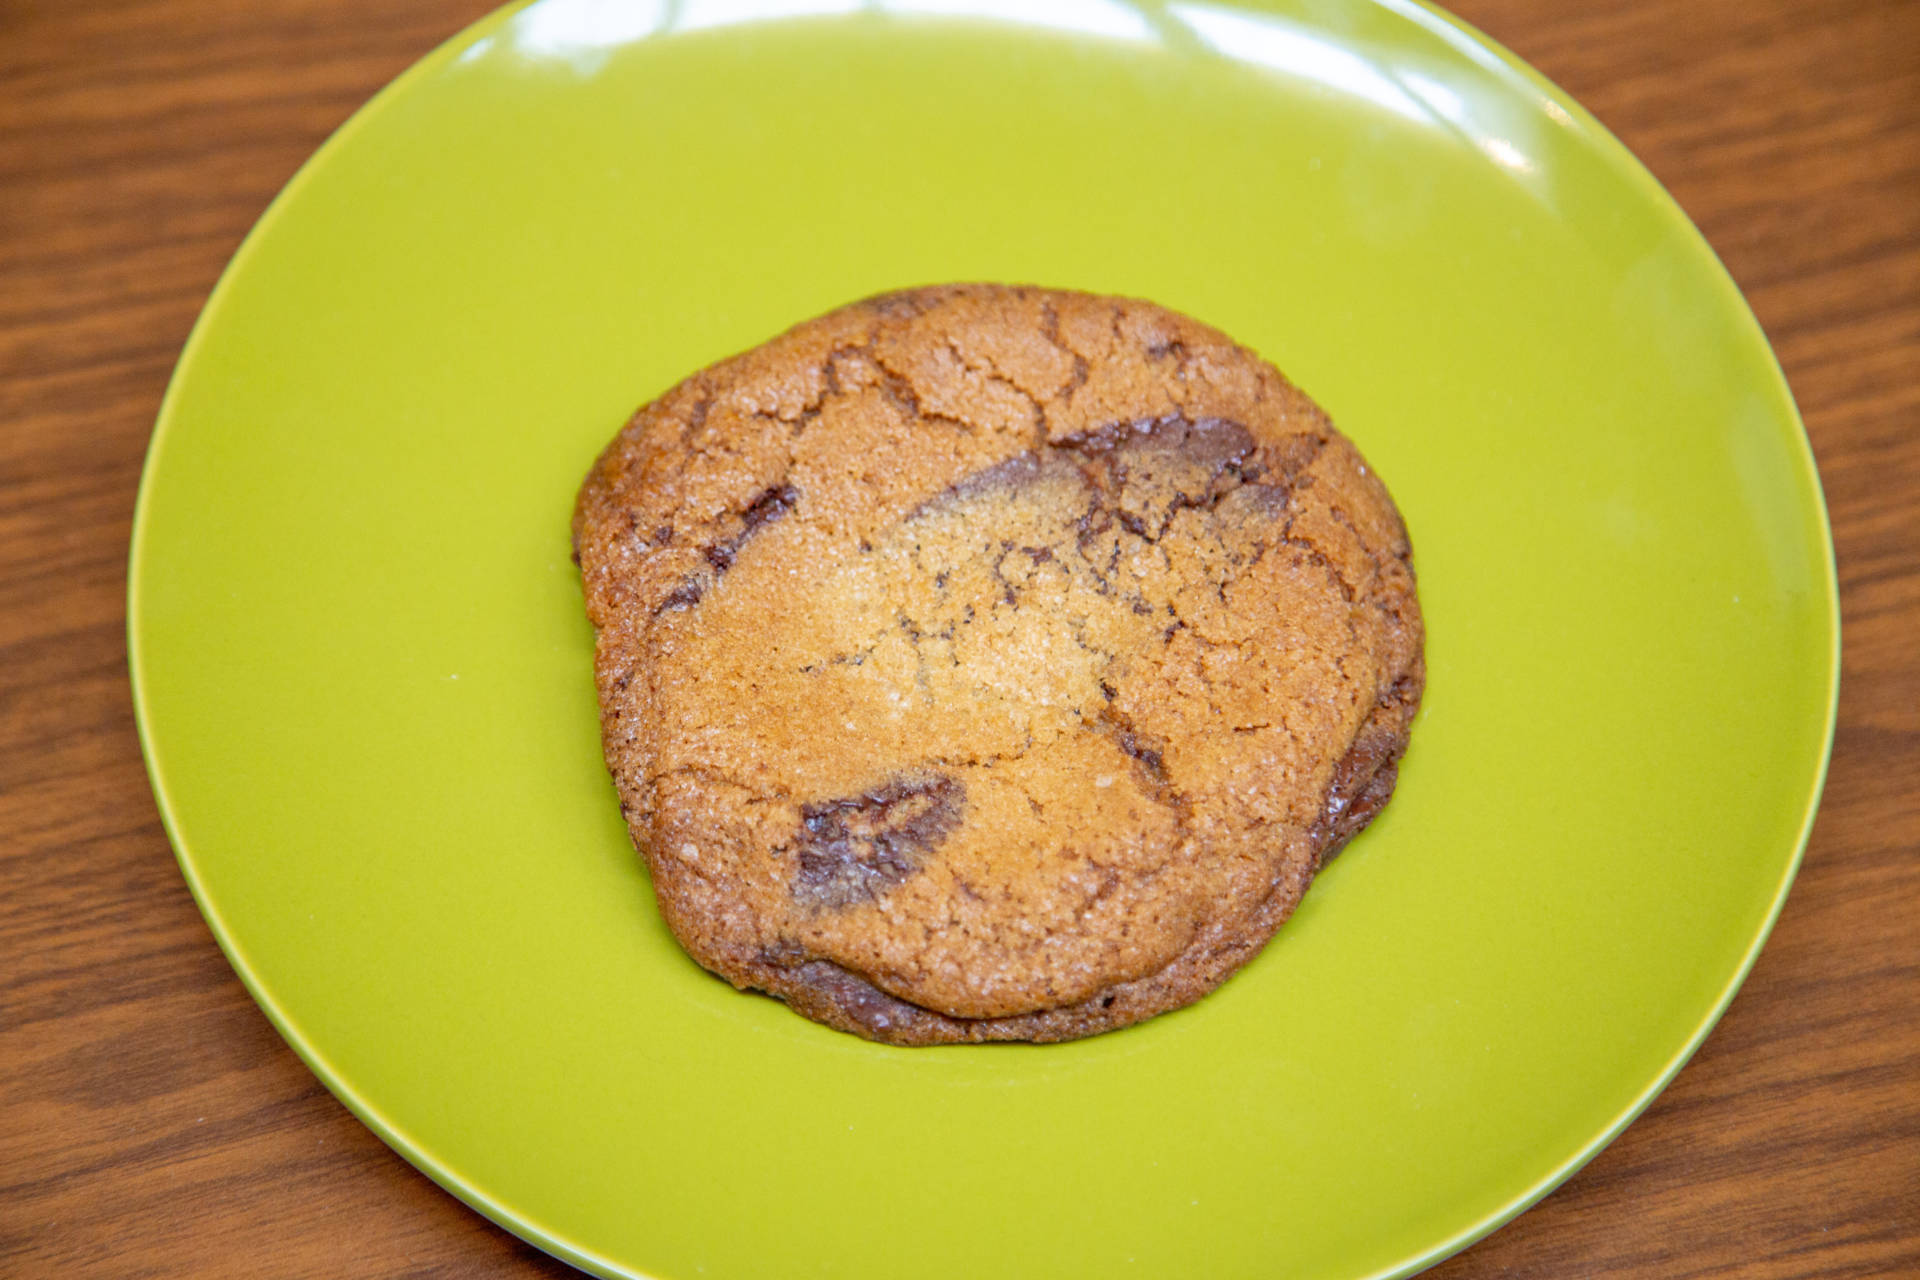 Arsicault Bakery's chocolate chip cookie technically contains zero chips.